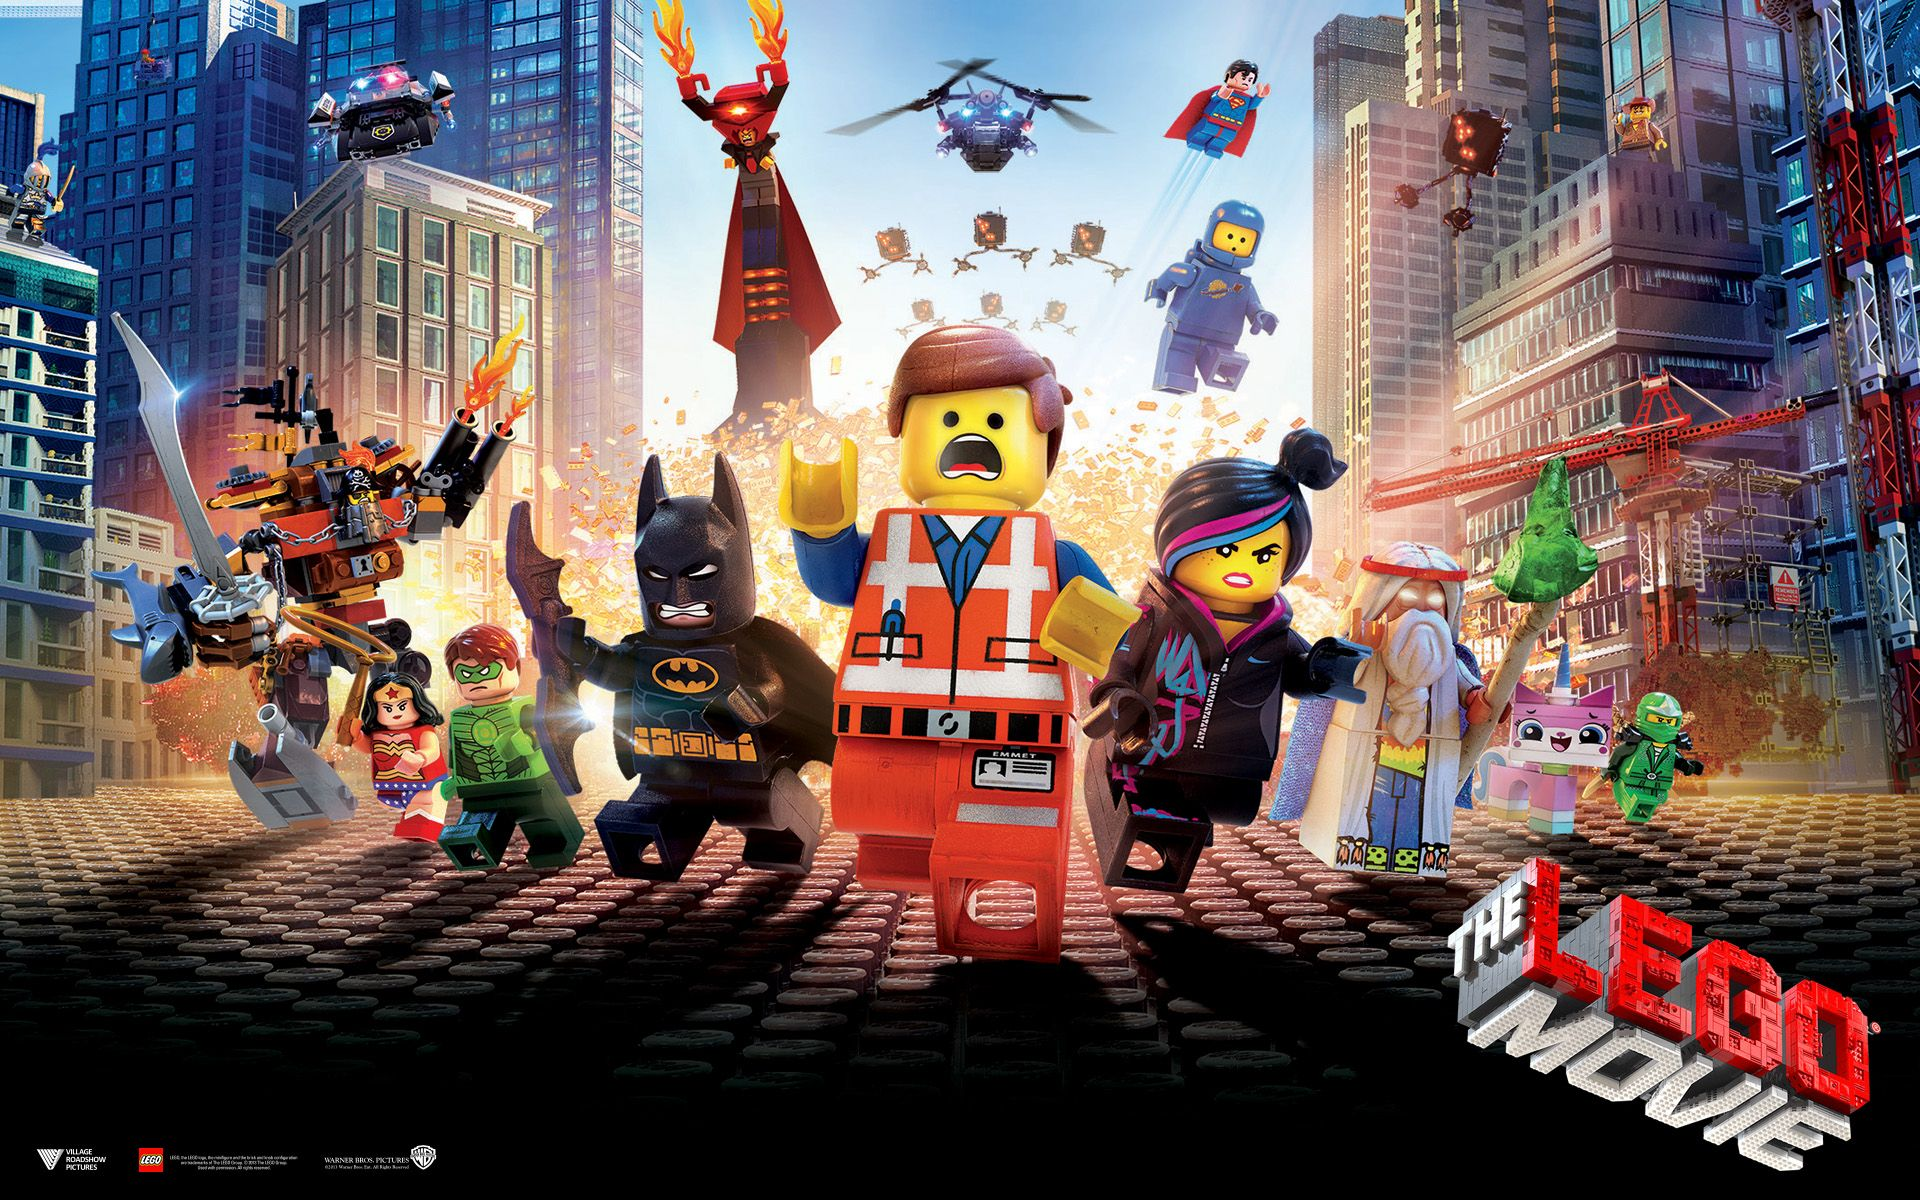 Sheet Lego The Movie HD Wallpaper http//1sthdwallpapers